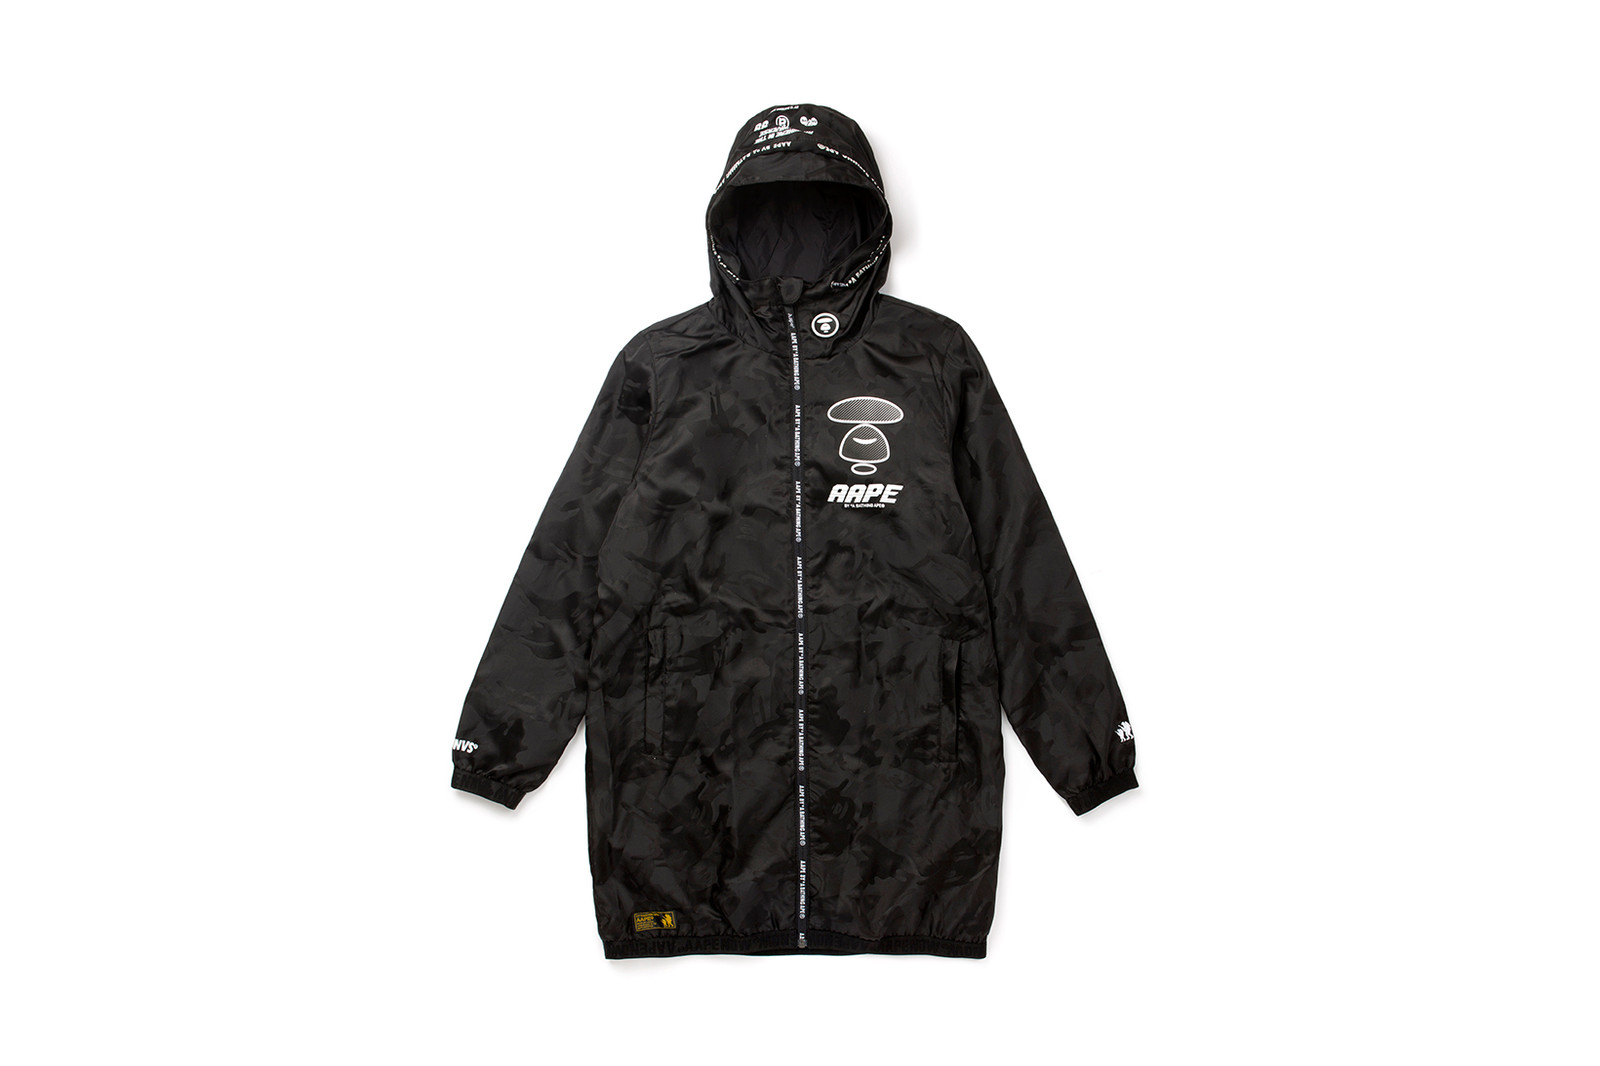 AAPE by A Bathing Ape 2017 Summer Collection